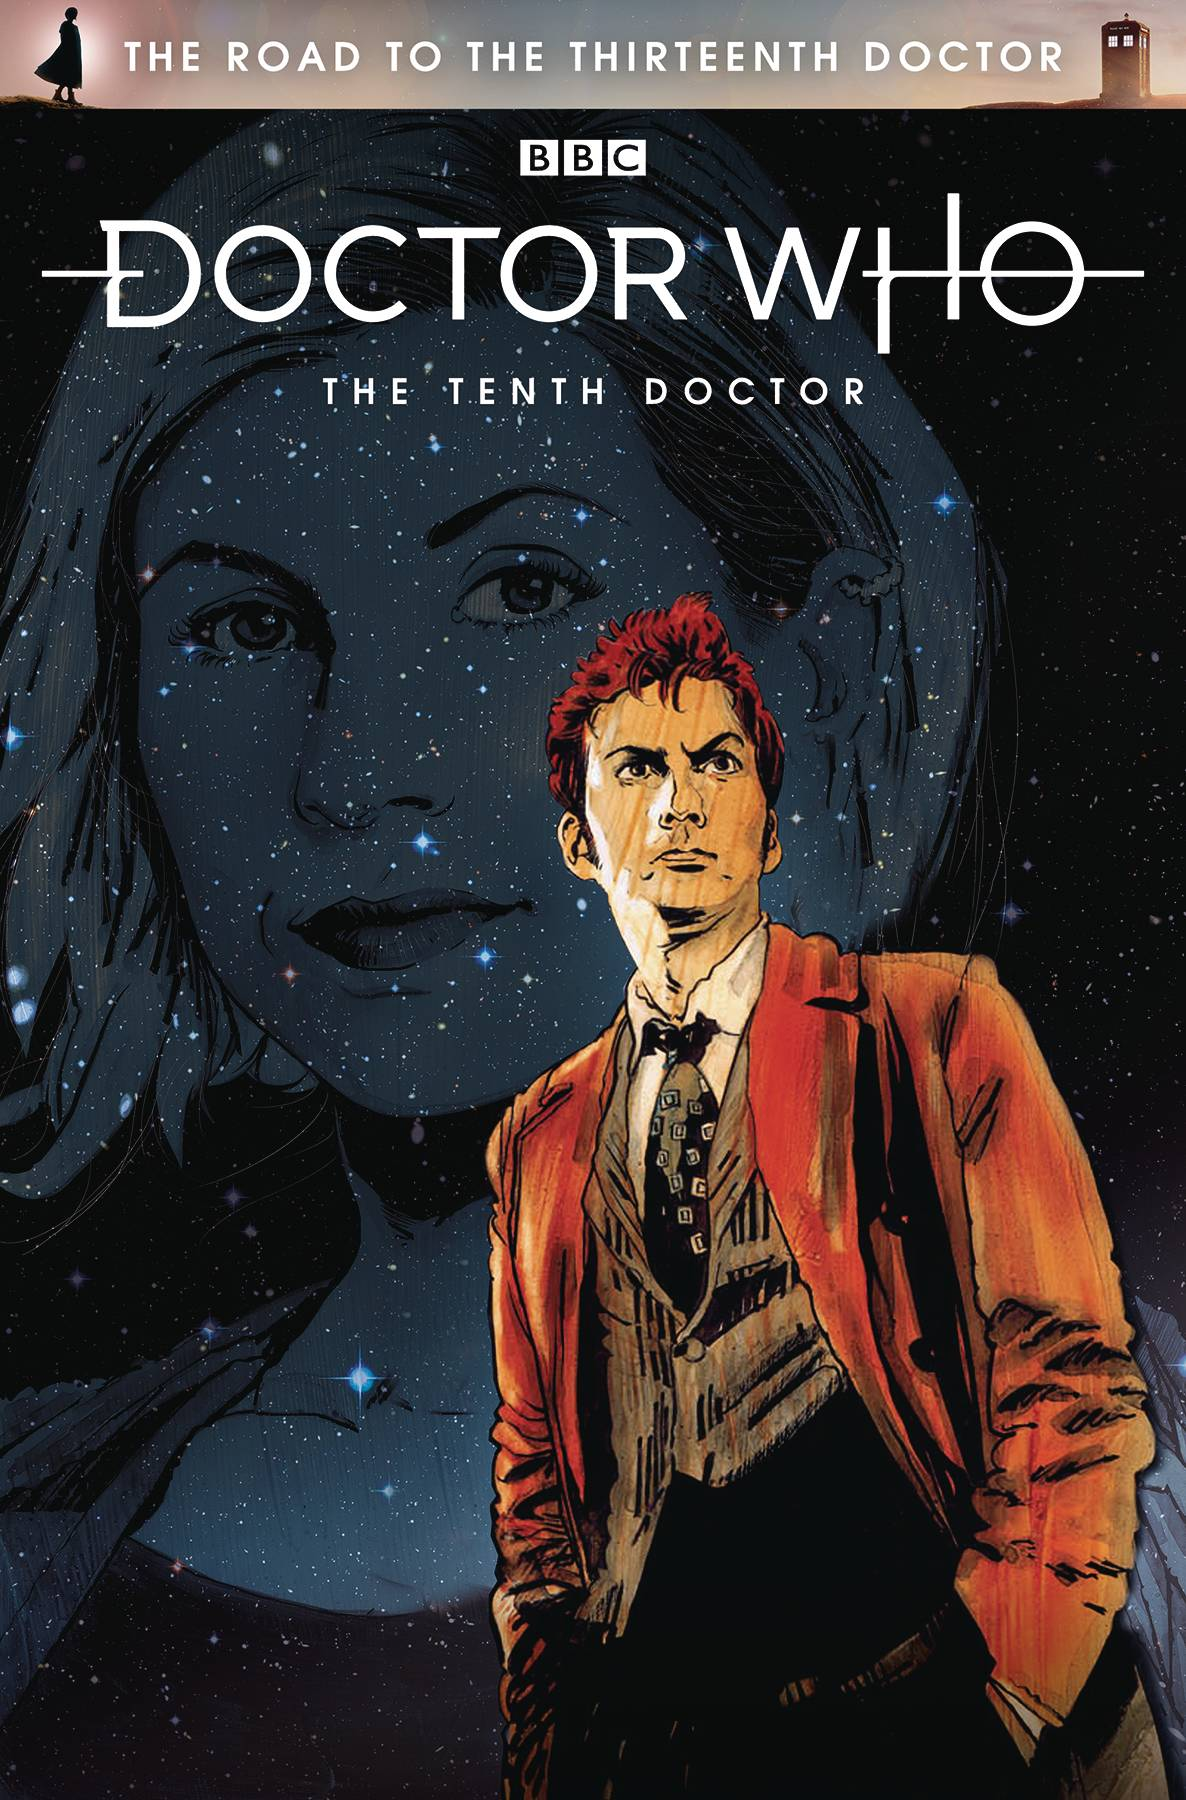 DOCTOR WHO ROAD TO 13TH DR 10TH DR SPECIAL #1